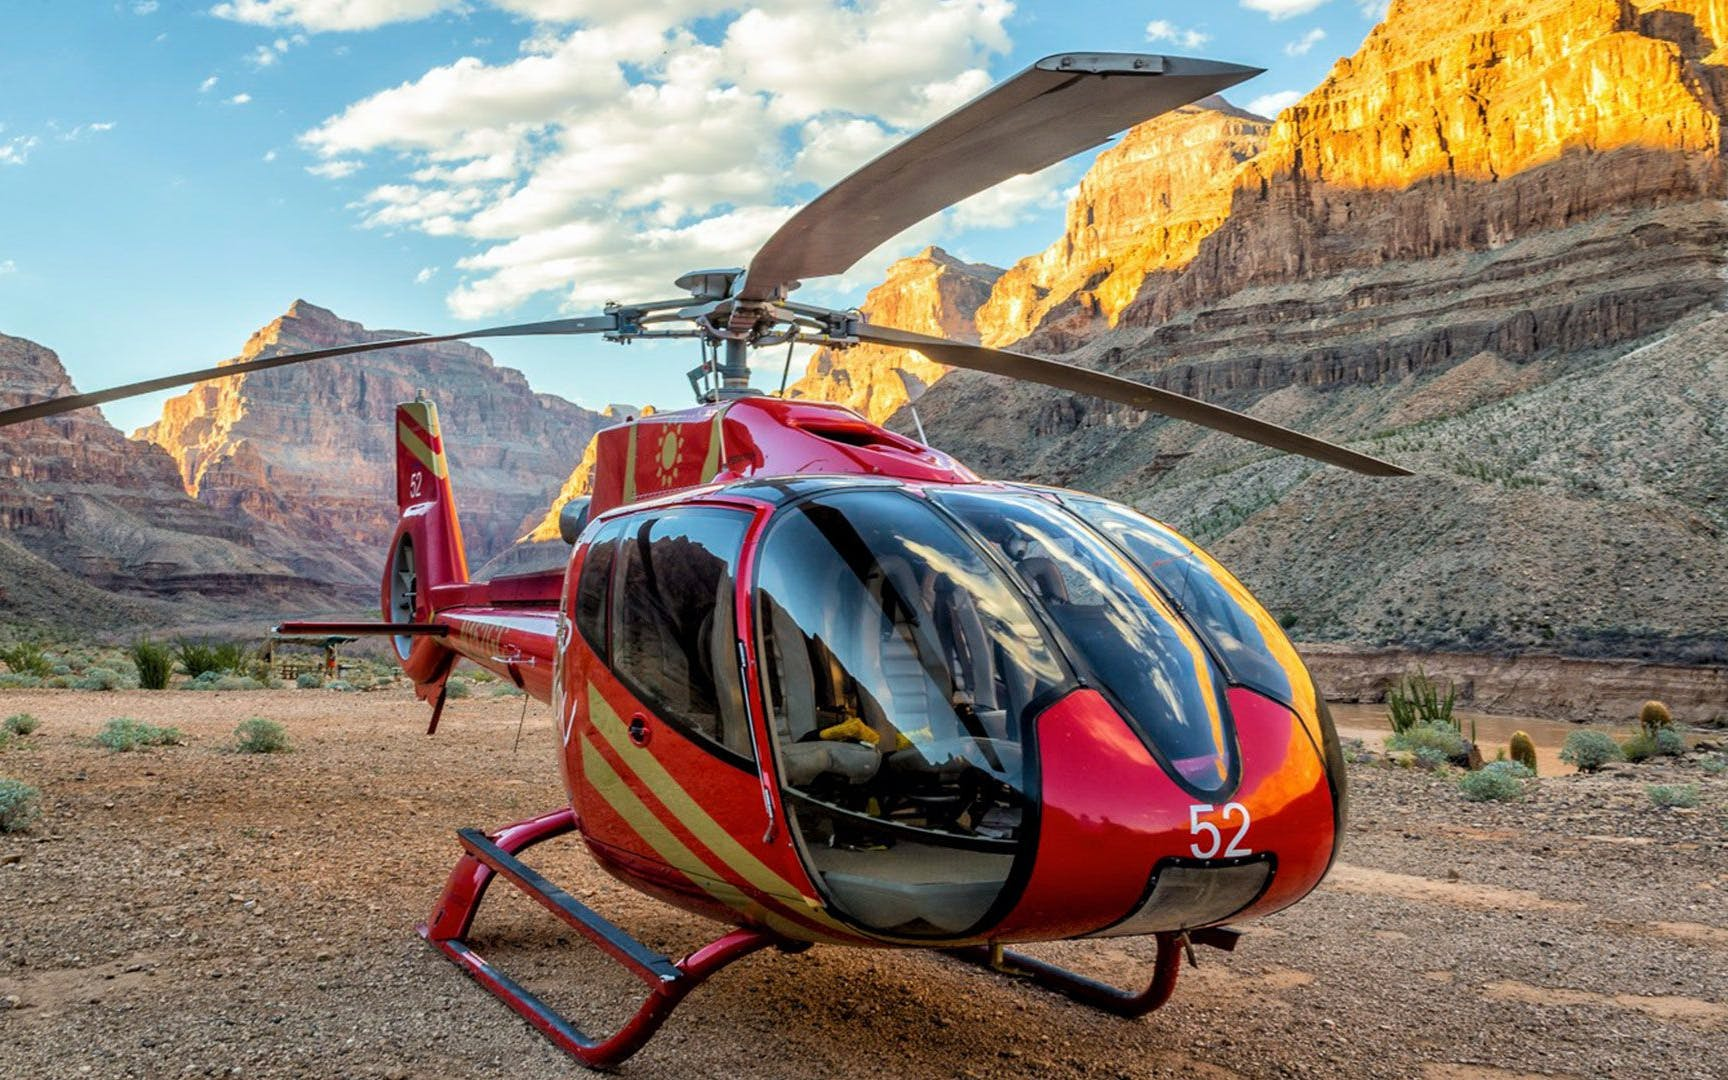 South Rim Helicopter Tour with Optional Jeep Excursion - 30 Minutes (Self Drive)